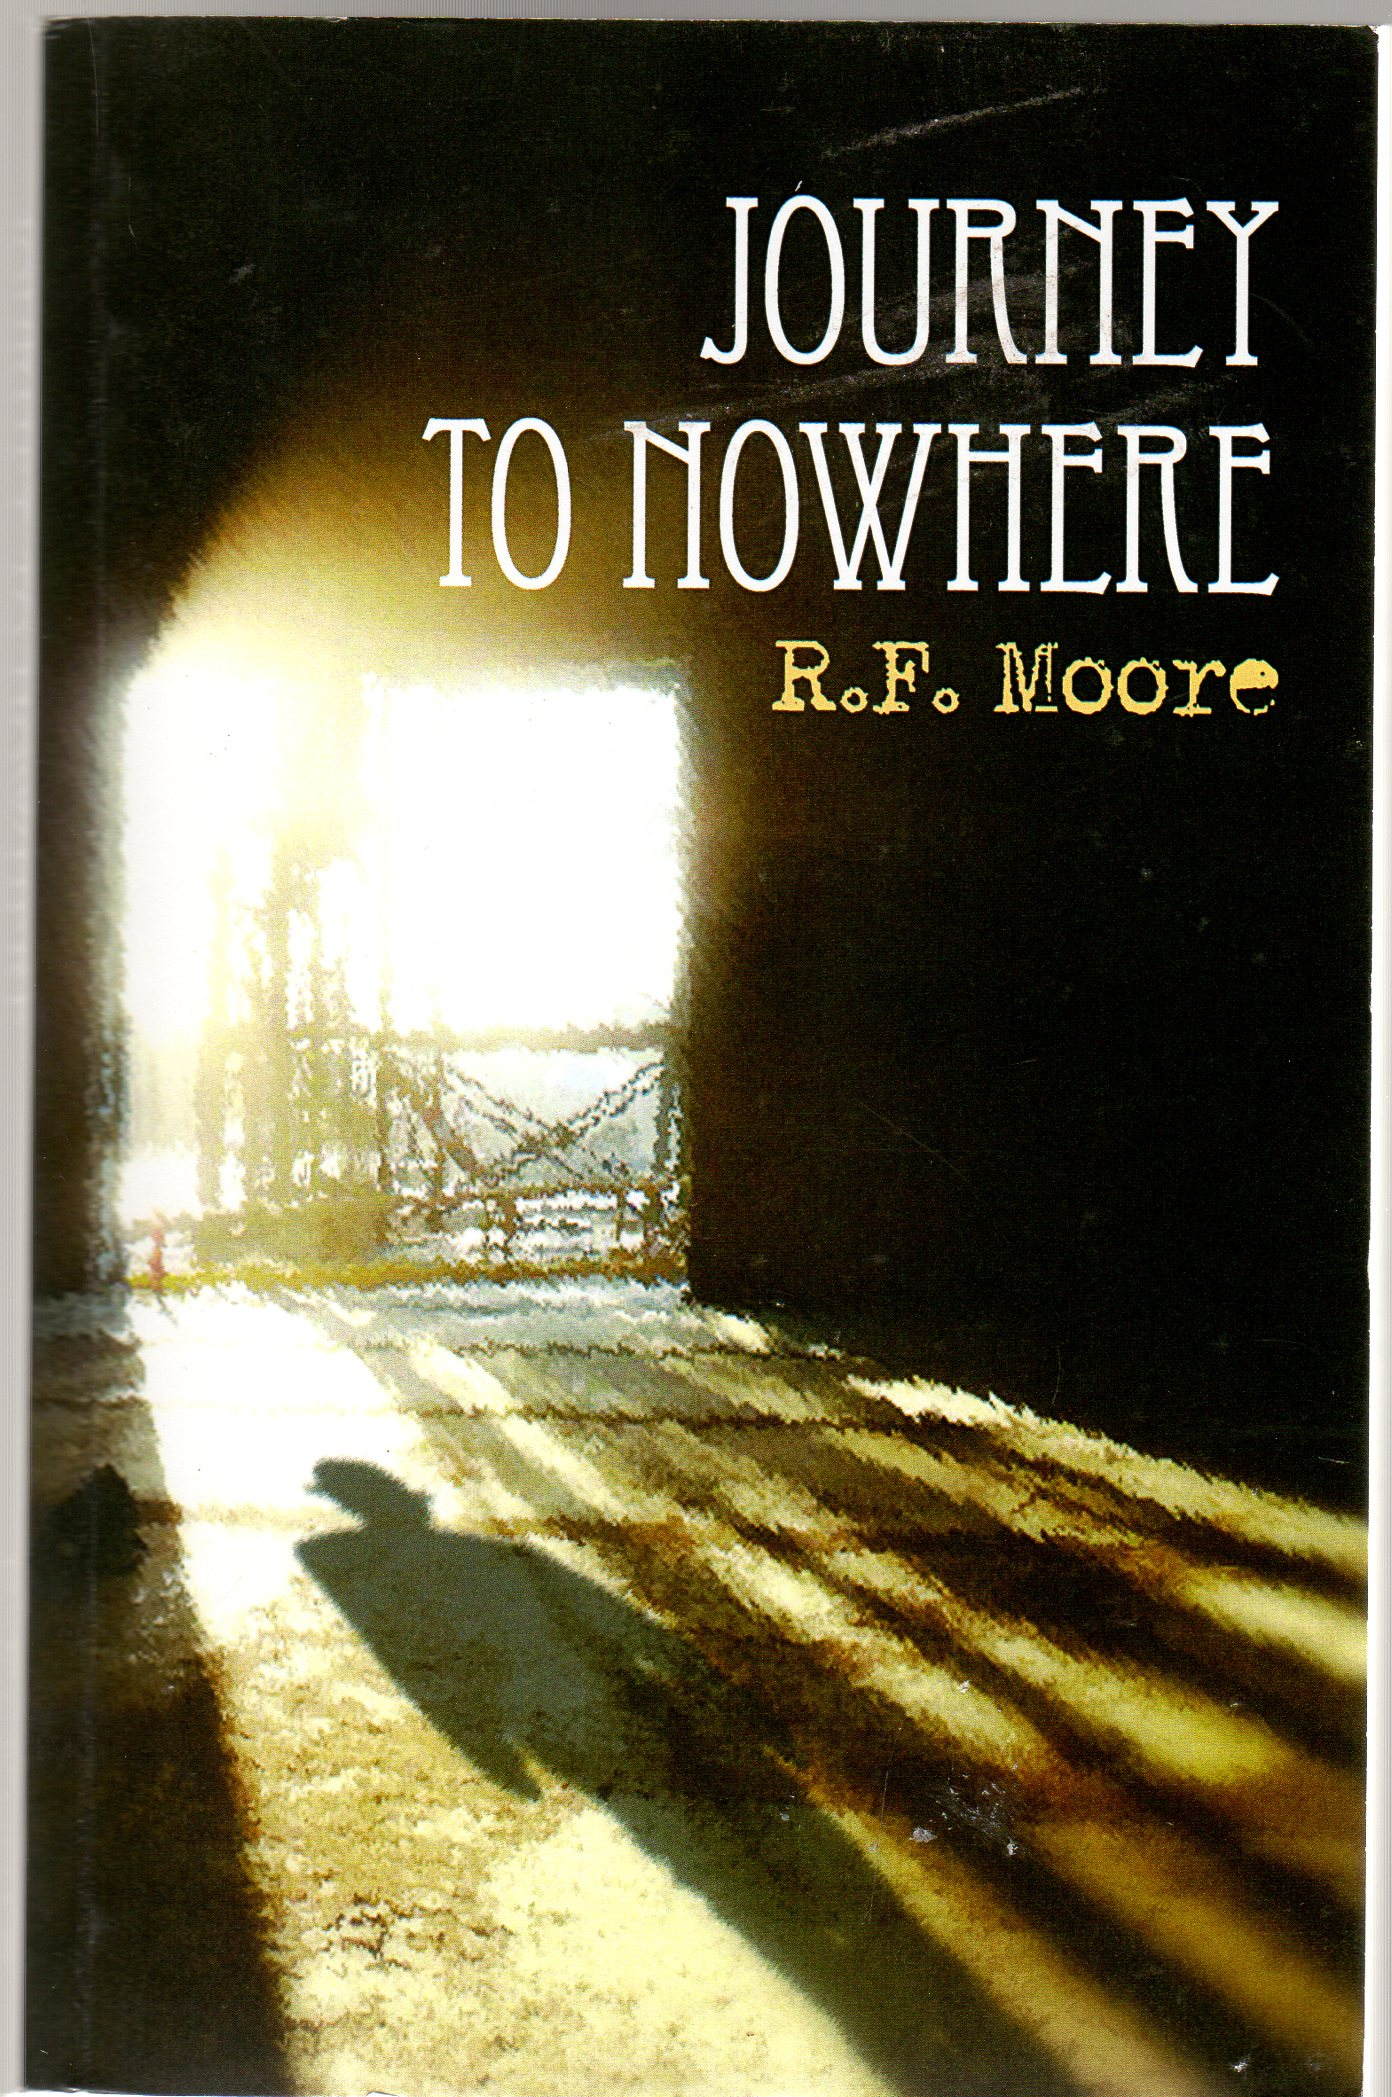 Image for A Journey to Nowhere  SIGNED COPY)